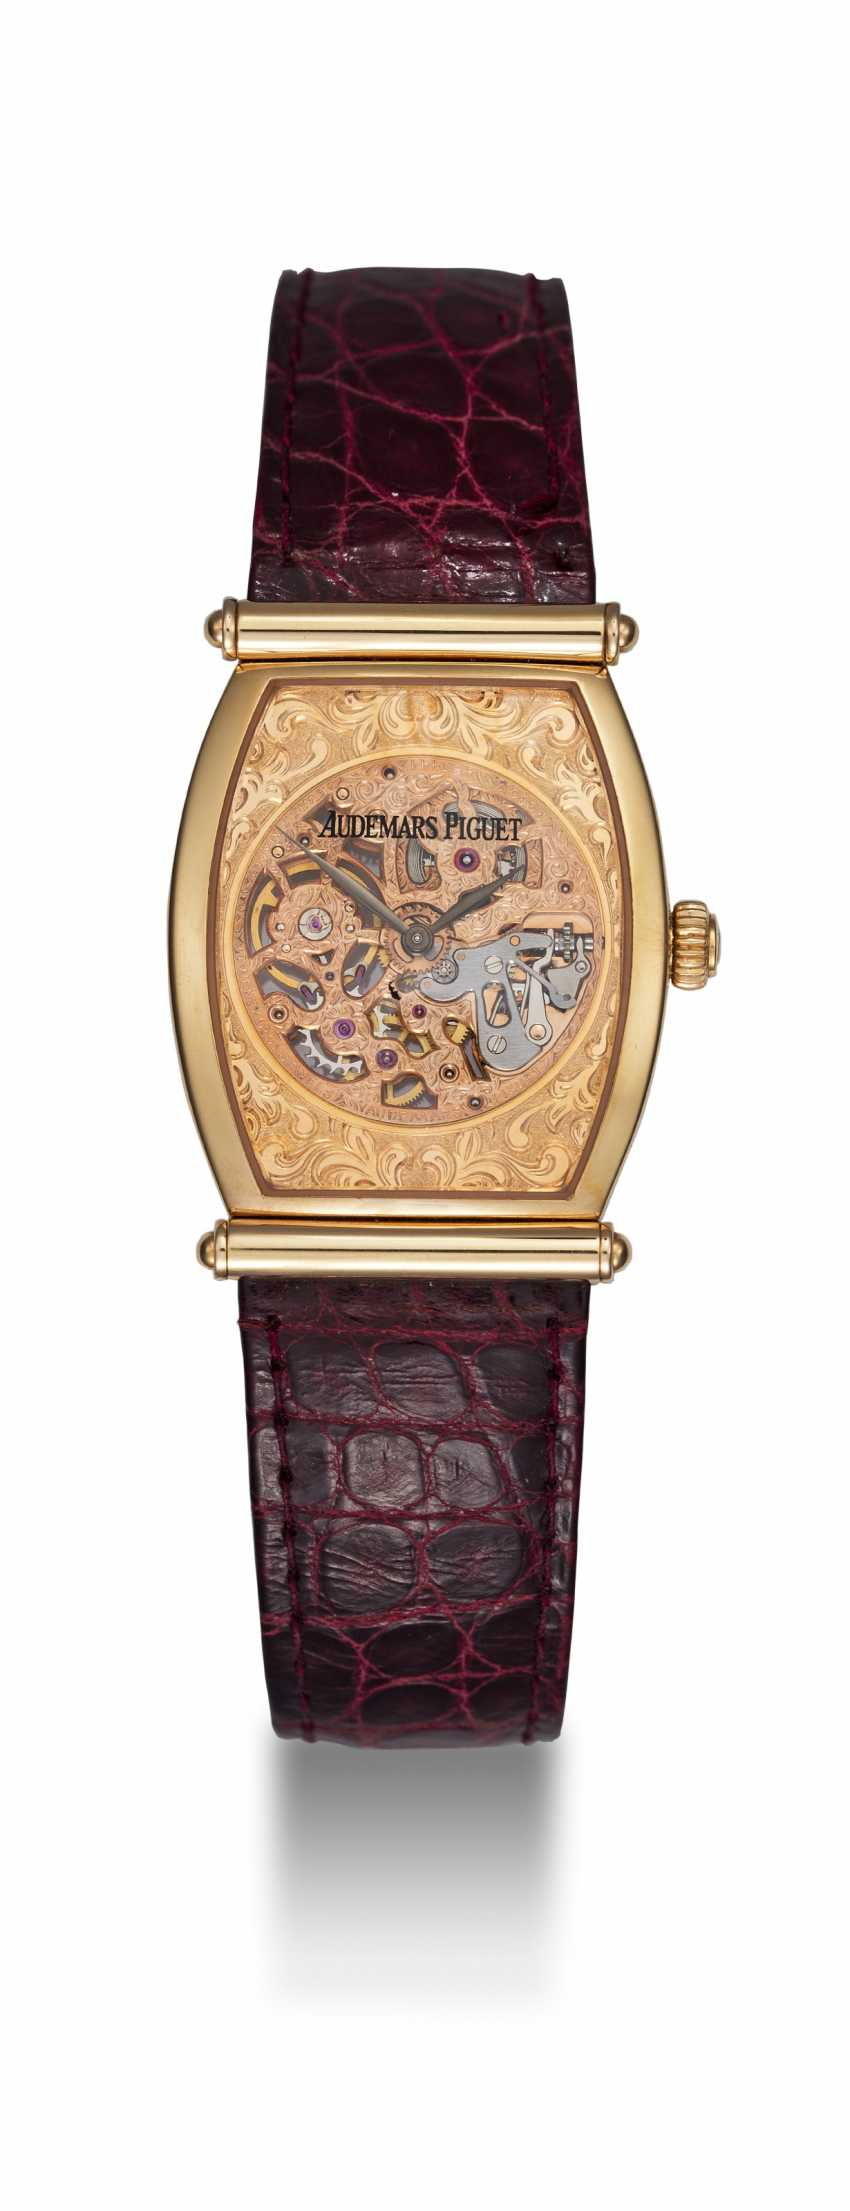 AUDEMARS PIGUET, A GOLD TONNEAU-SHAPED SKELETONISED WRISTWATCH WITH HOODED LUGS, CARNEGIE REF. 15018OR - photo 3